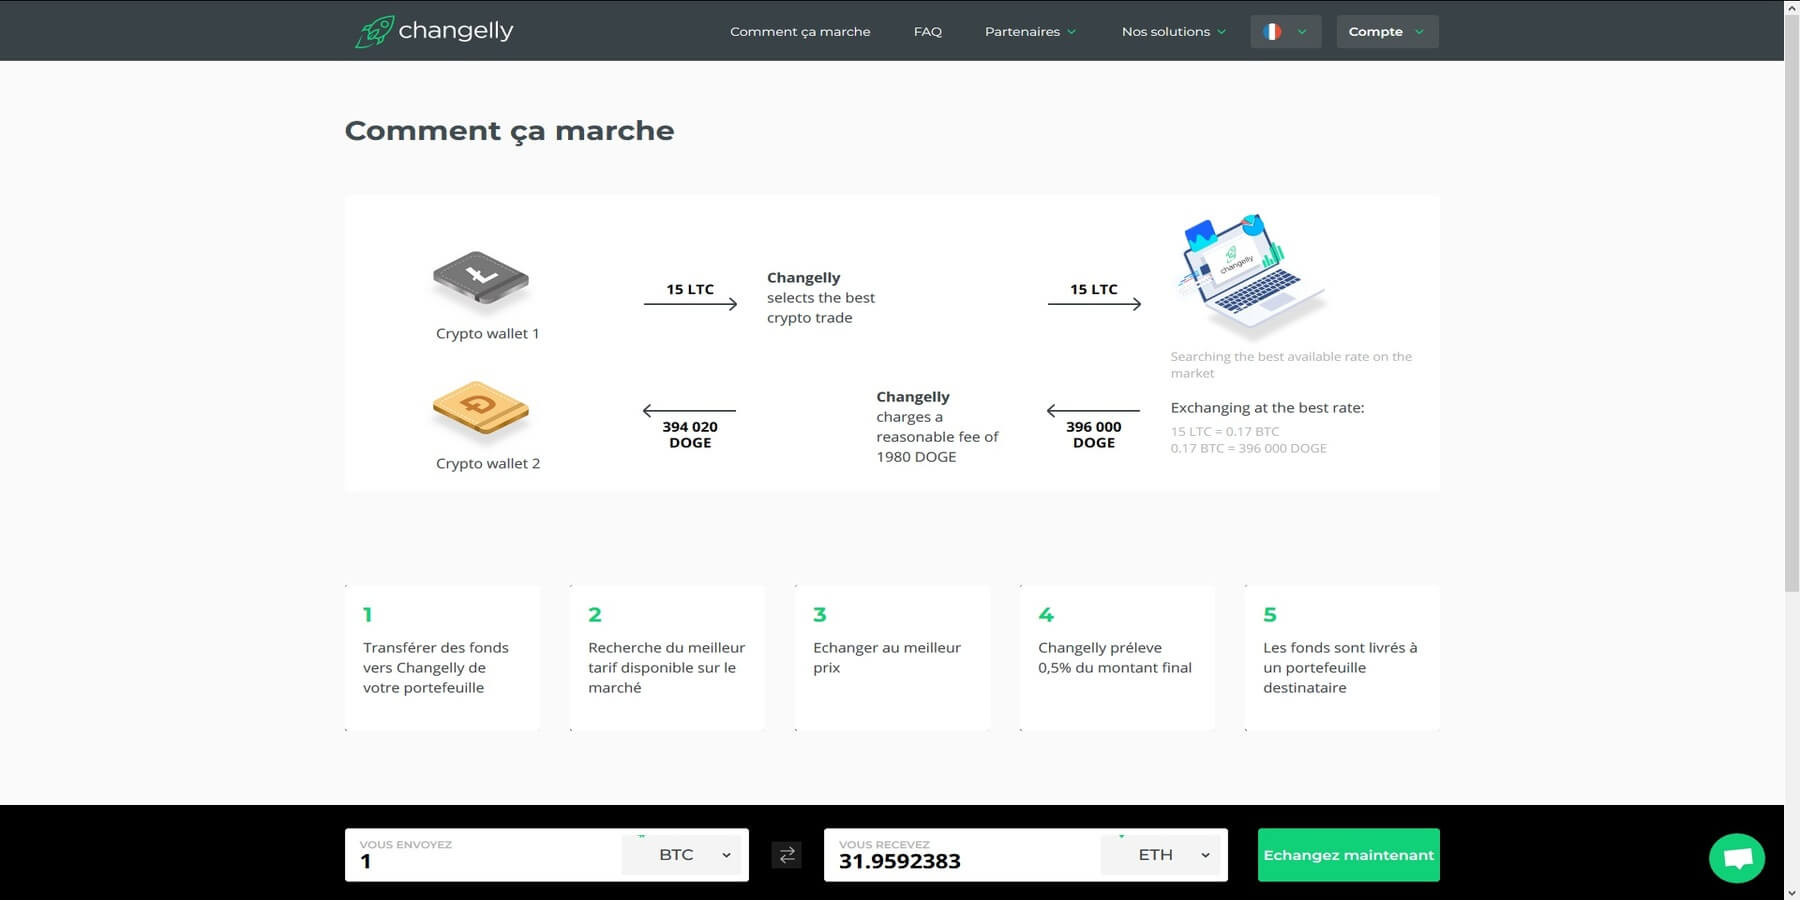 Fonctionnement de Changelly